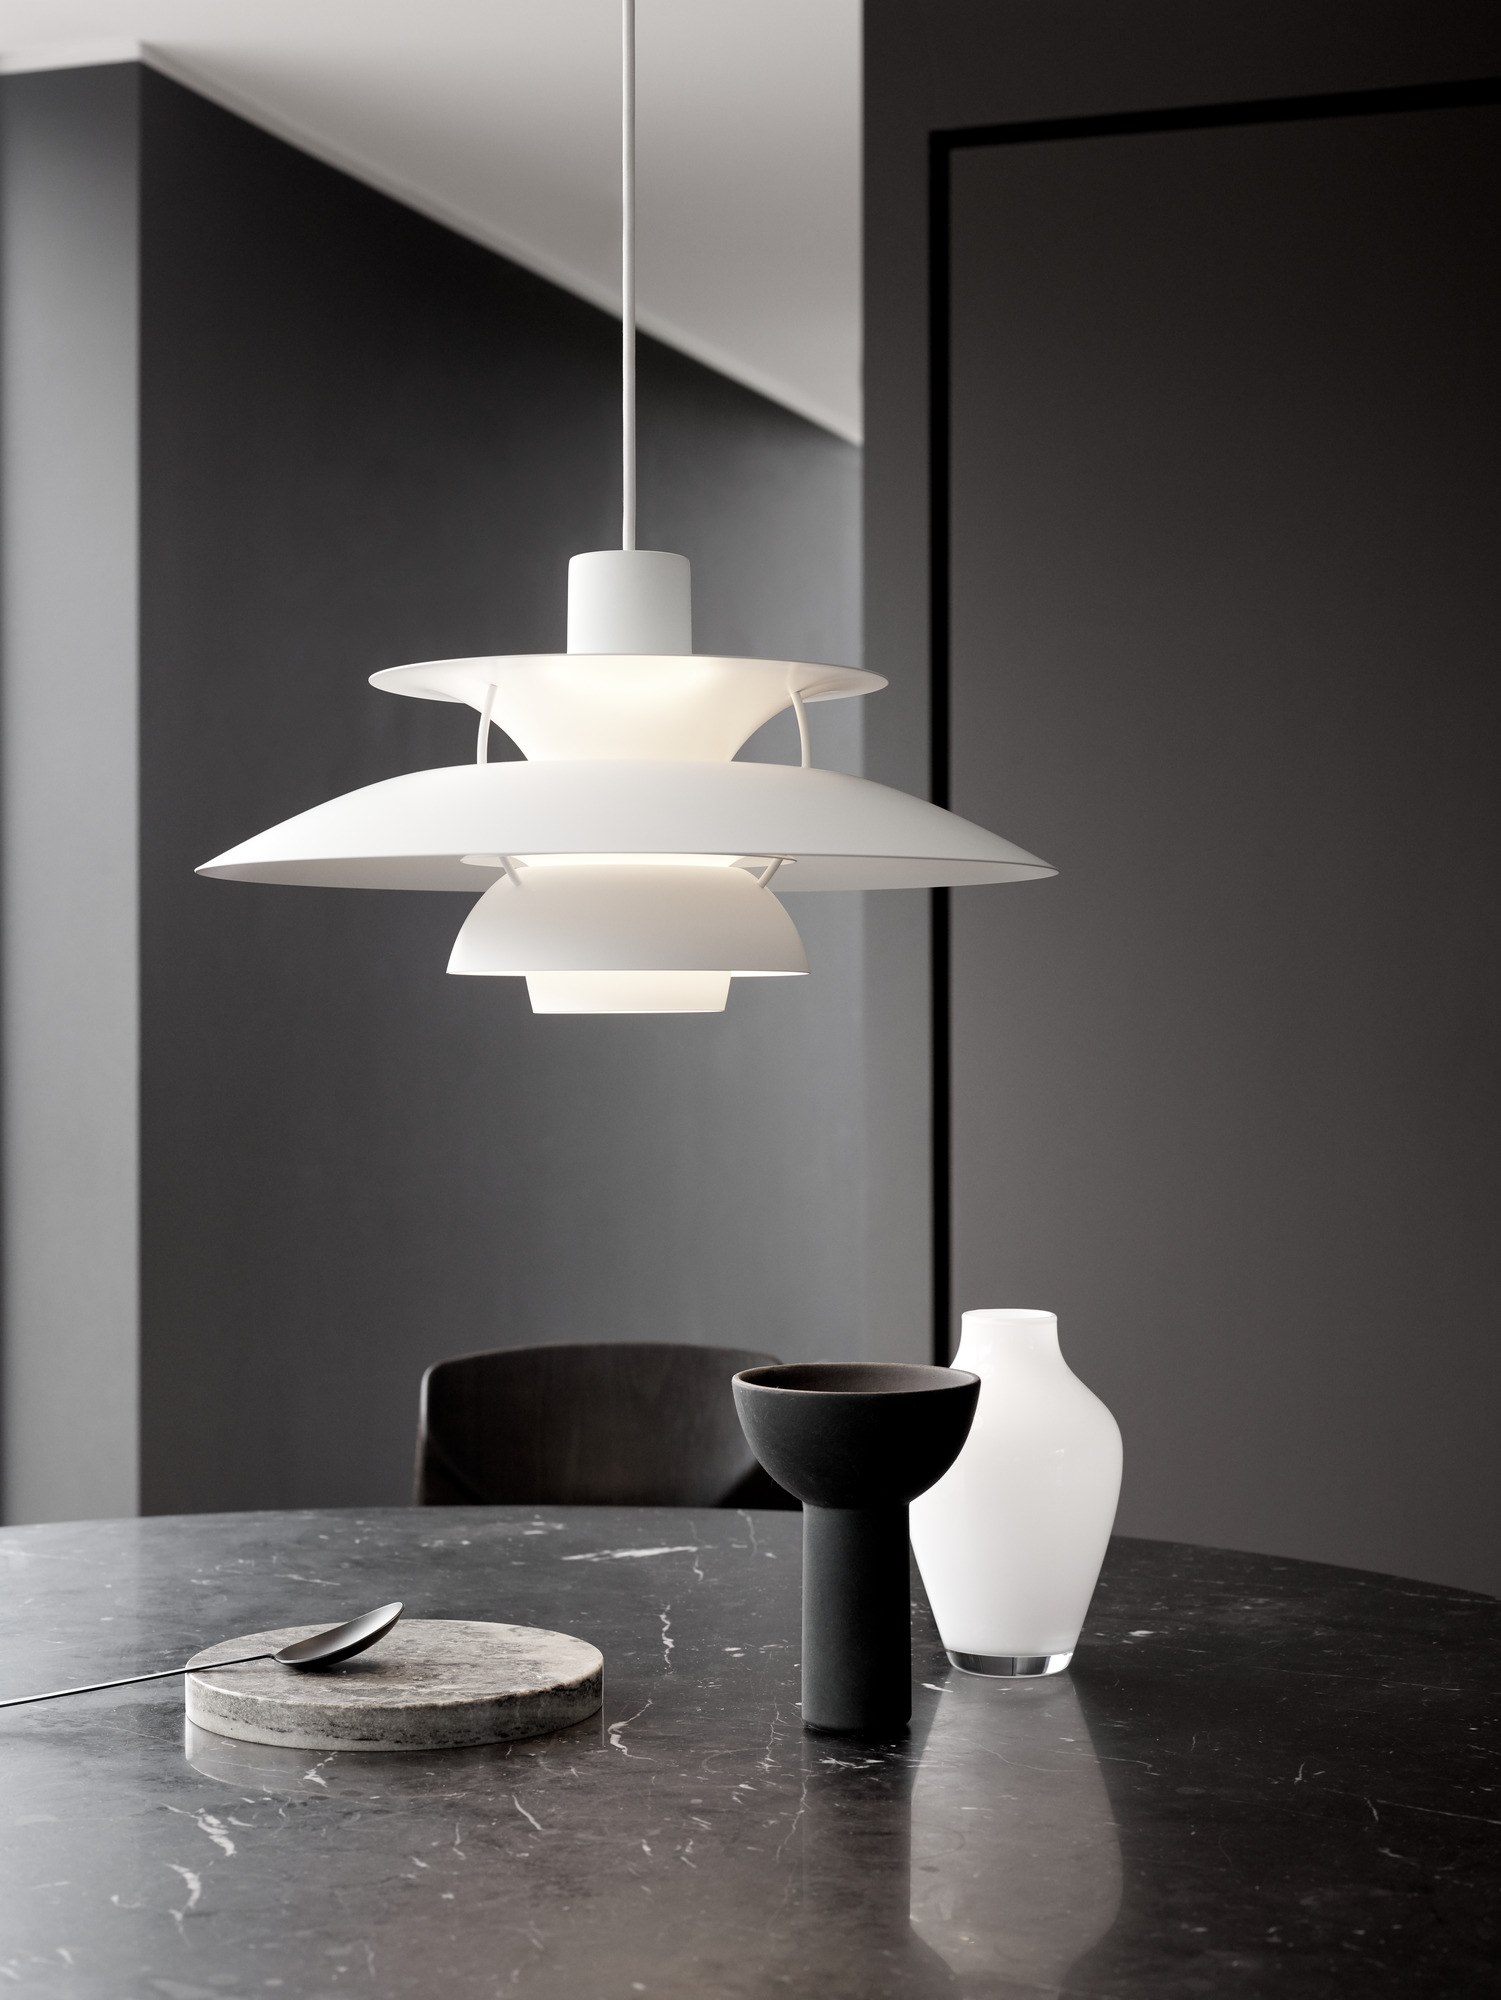 PH 5  Pendant Light - The fixture provides 100% glare-free light. Poul Henningsen developed the PH 5 in 1958 as a follow-up to his celebrated three-shade system. The fixture emits both downward and lateral light, thus illuminating itself. In the PH 5 Classic, a warmer tone of light is created by the inside red cone and a small blue reflector. | Matter of Stuff